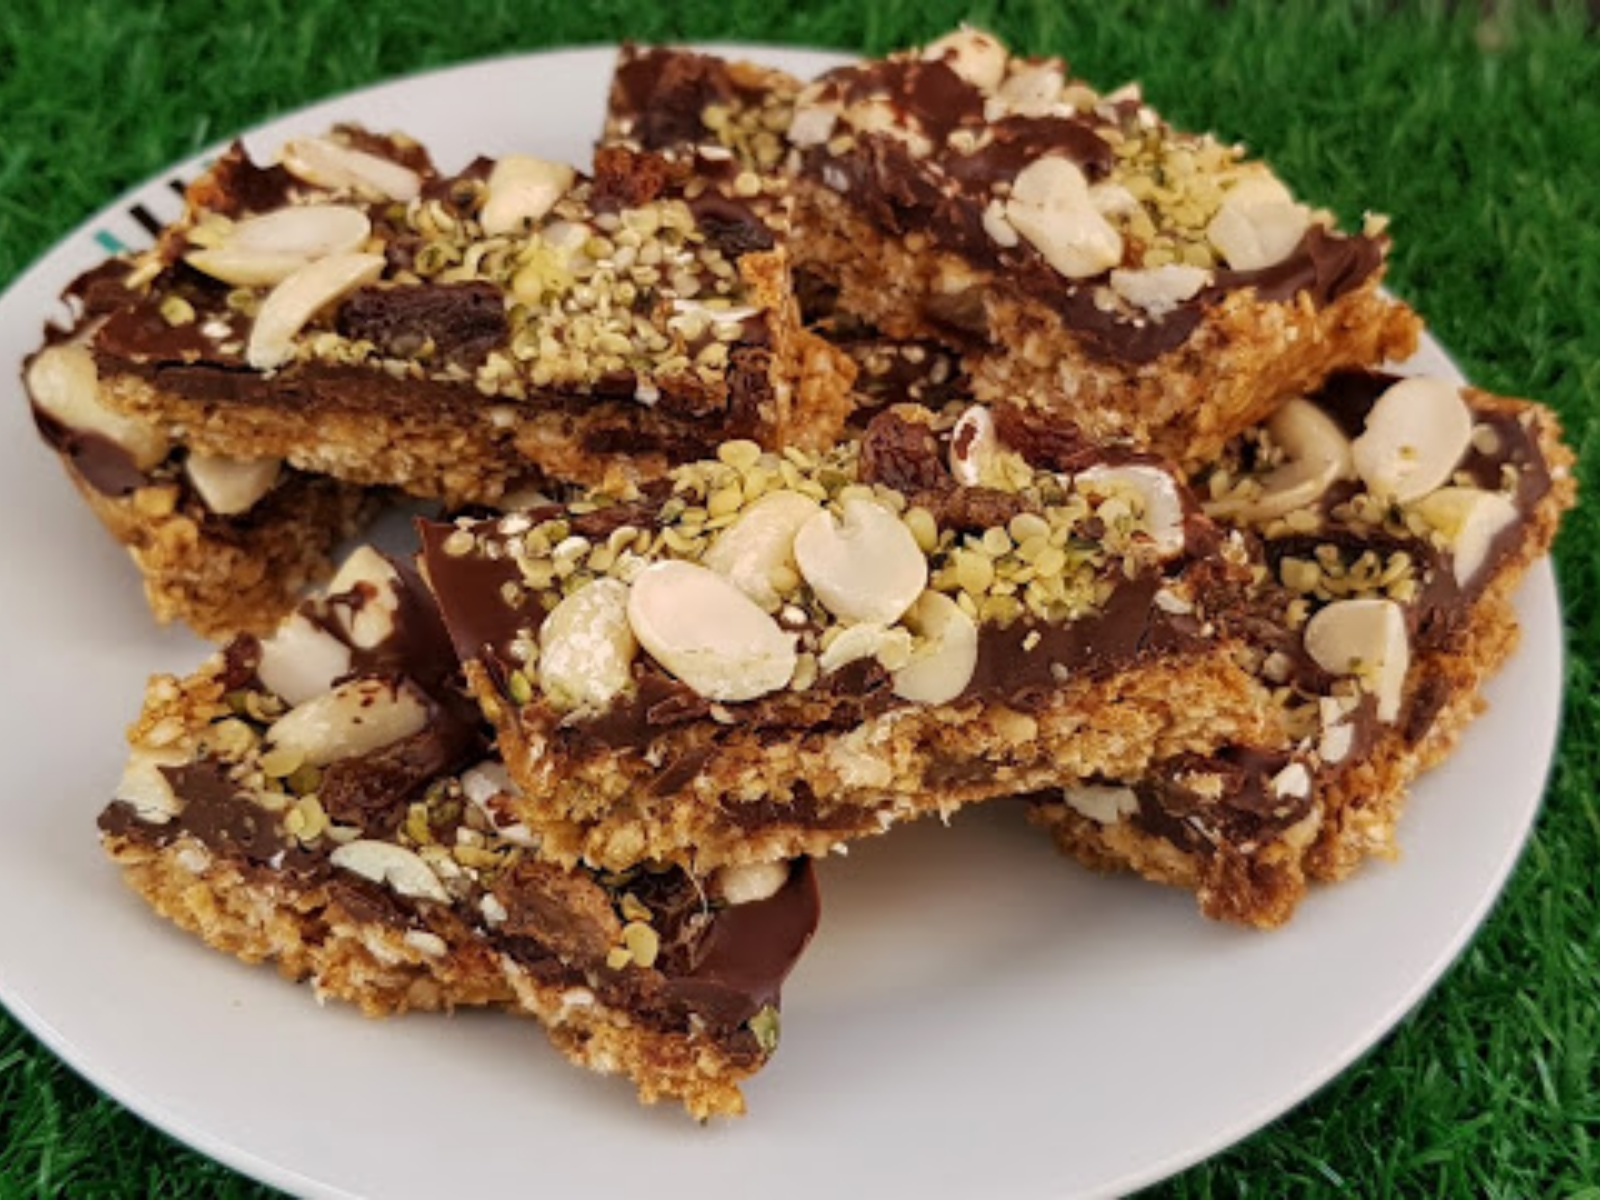 Chocolate, Oatmeal and Nut Energy Bars